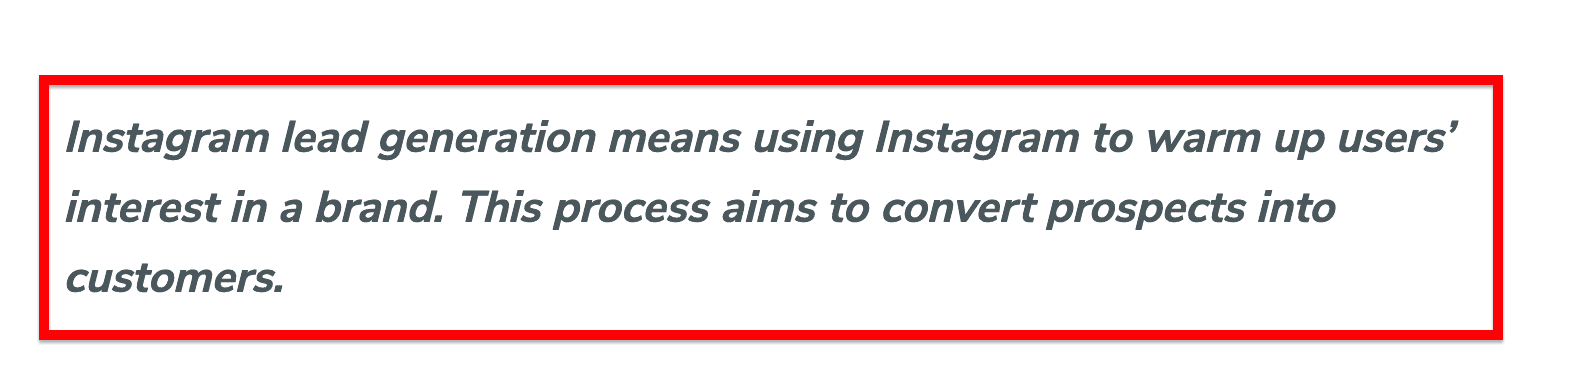 Instagram lead generation means using Instagram to warm up users' interest in a brand. The goal of this is to turn prospects into customers.